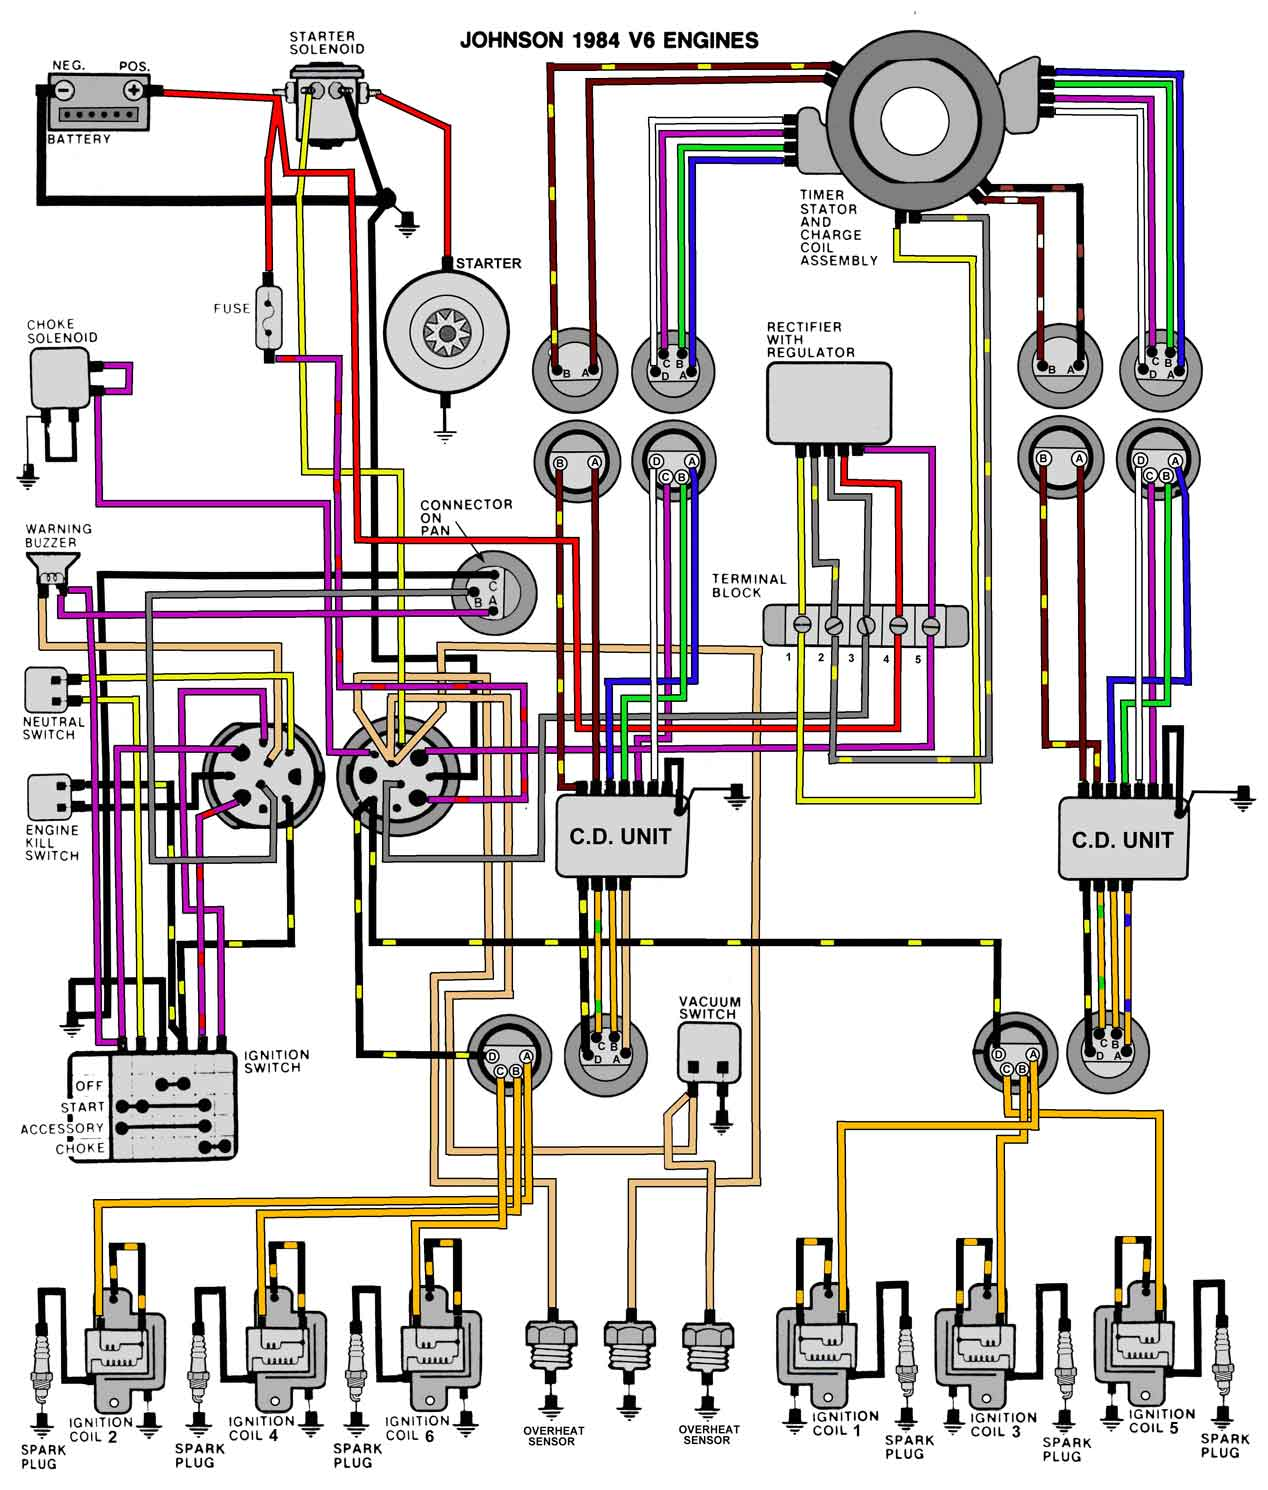 84_V6 mastertech marine evinrude johnson outboard wiring diagrams wiring diagram johnson 50 hp outboard at gsmportal.co